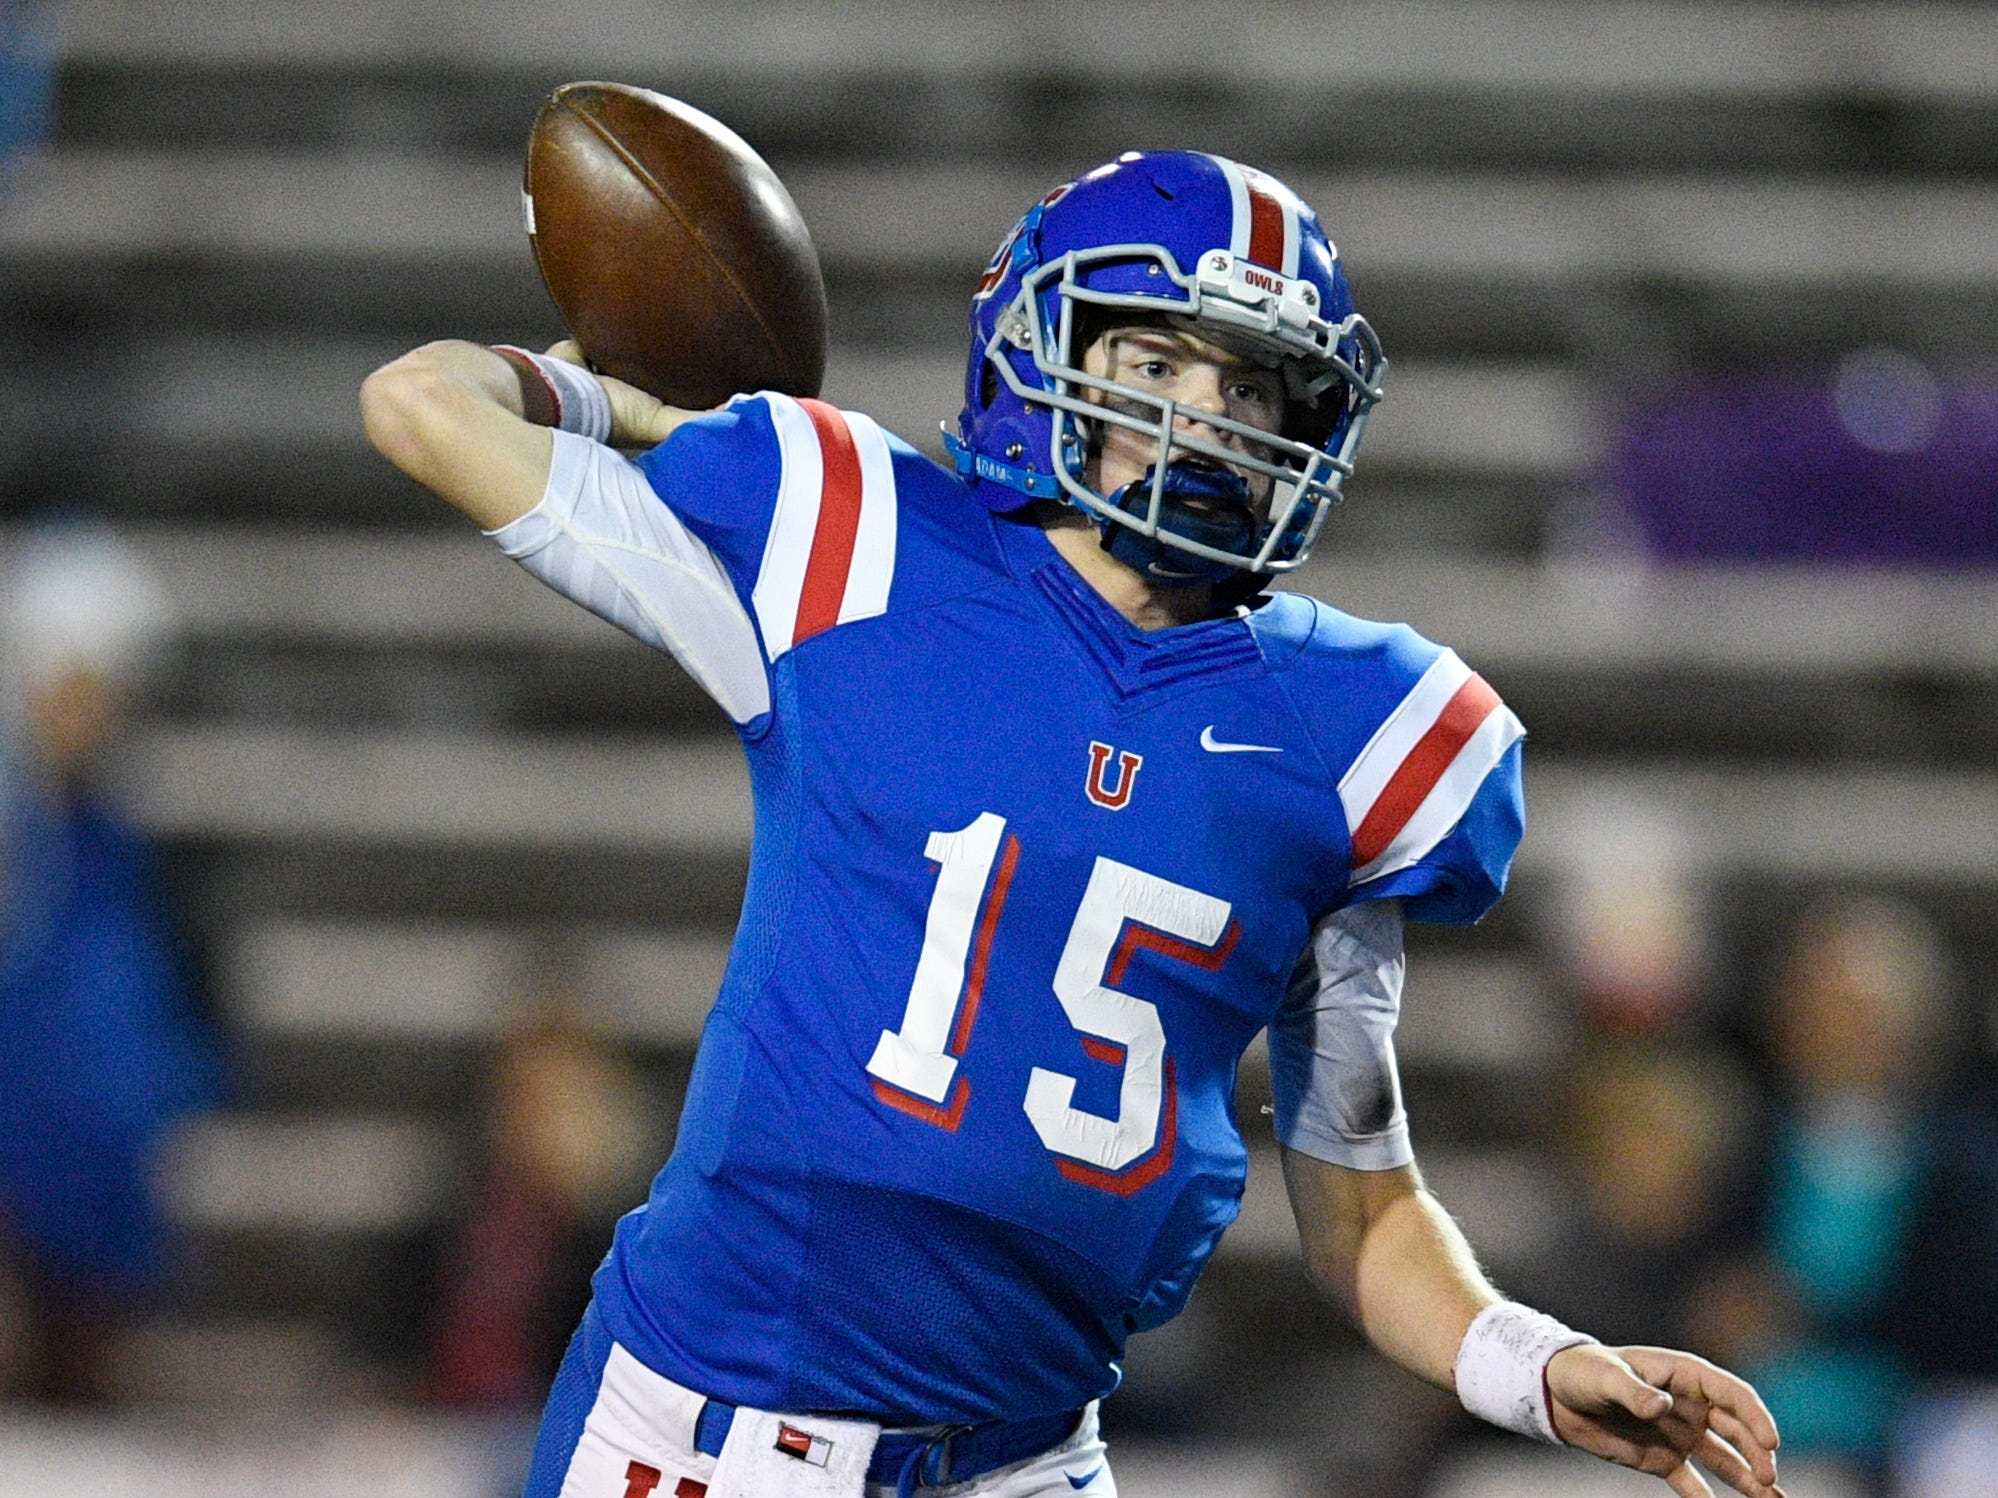 Memphis Univ. School quarterback Sellers Shy (15) throws in the first half at the Division II-AAA BlueCross Bowl state championship at Tennessee Tech's Tucker Stadium in Cookeville, Tenn., on Friday, Nov. 30, 2018.